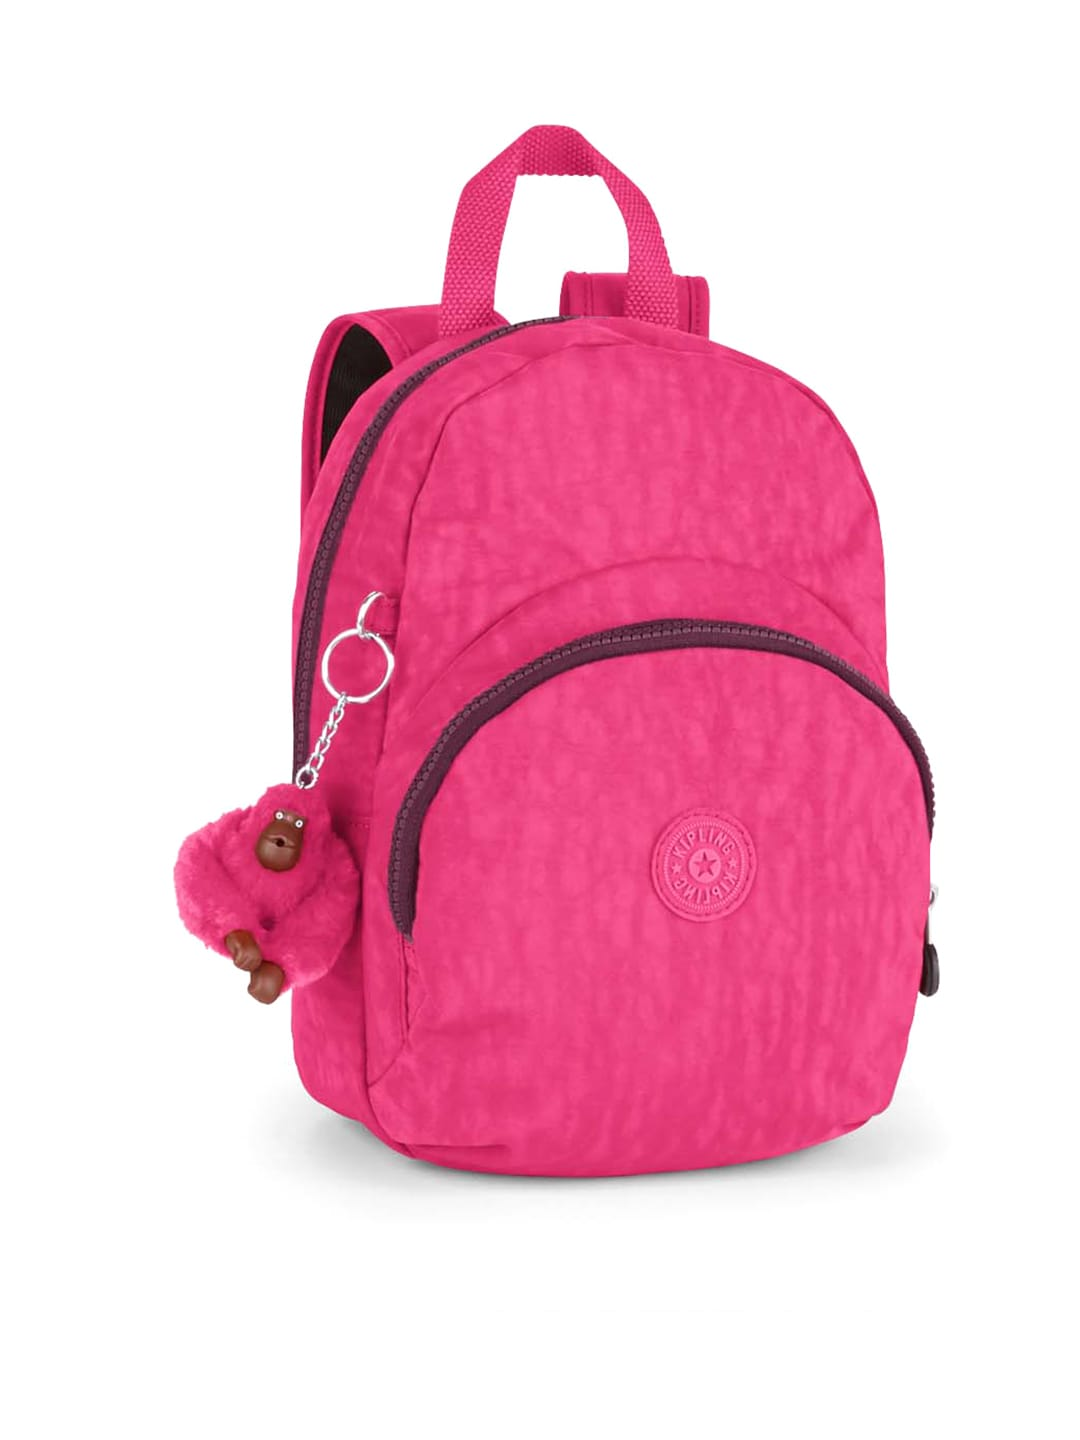 65e187e8343c For Girls Bags Backpacks - Buy For Girls Bags Backpacks online in India